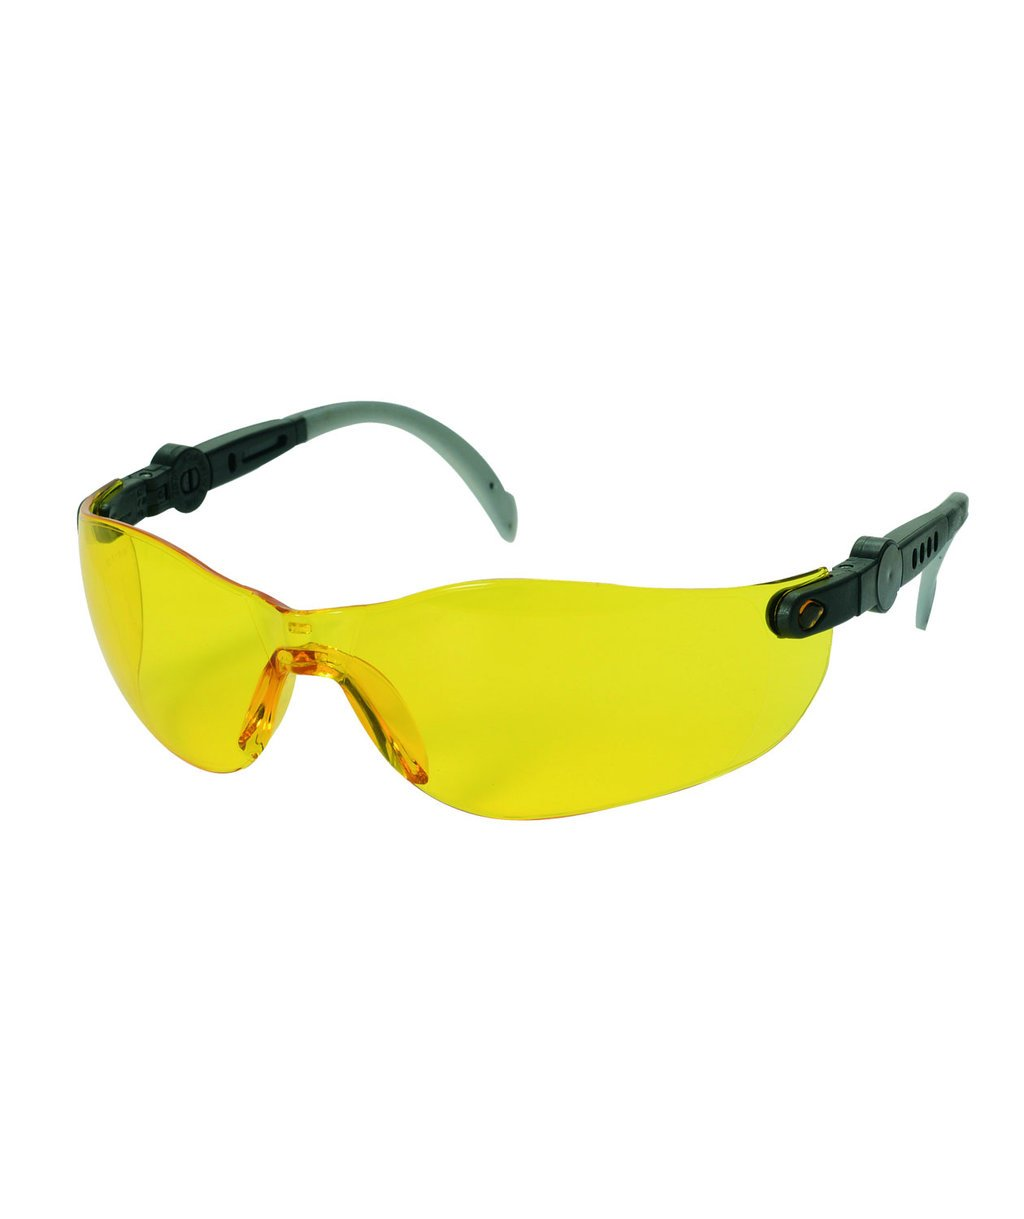 OX-ON Space Comfort safety glasses, Yellow